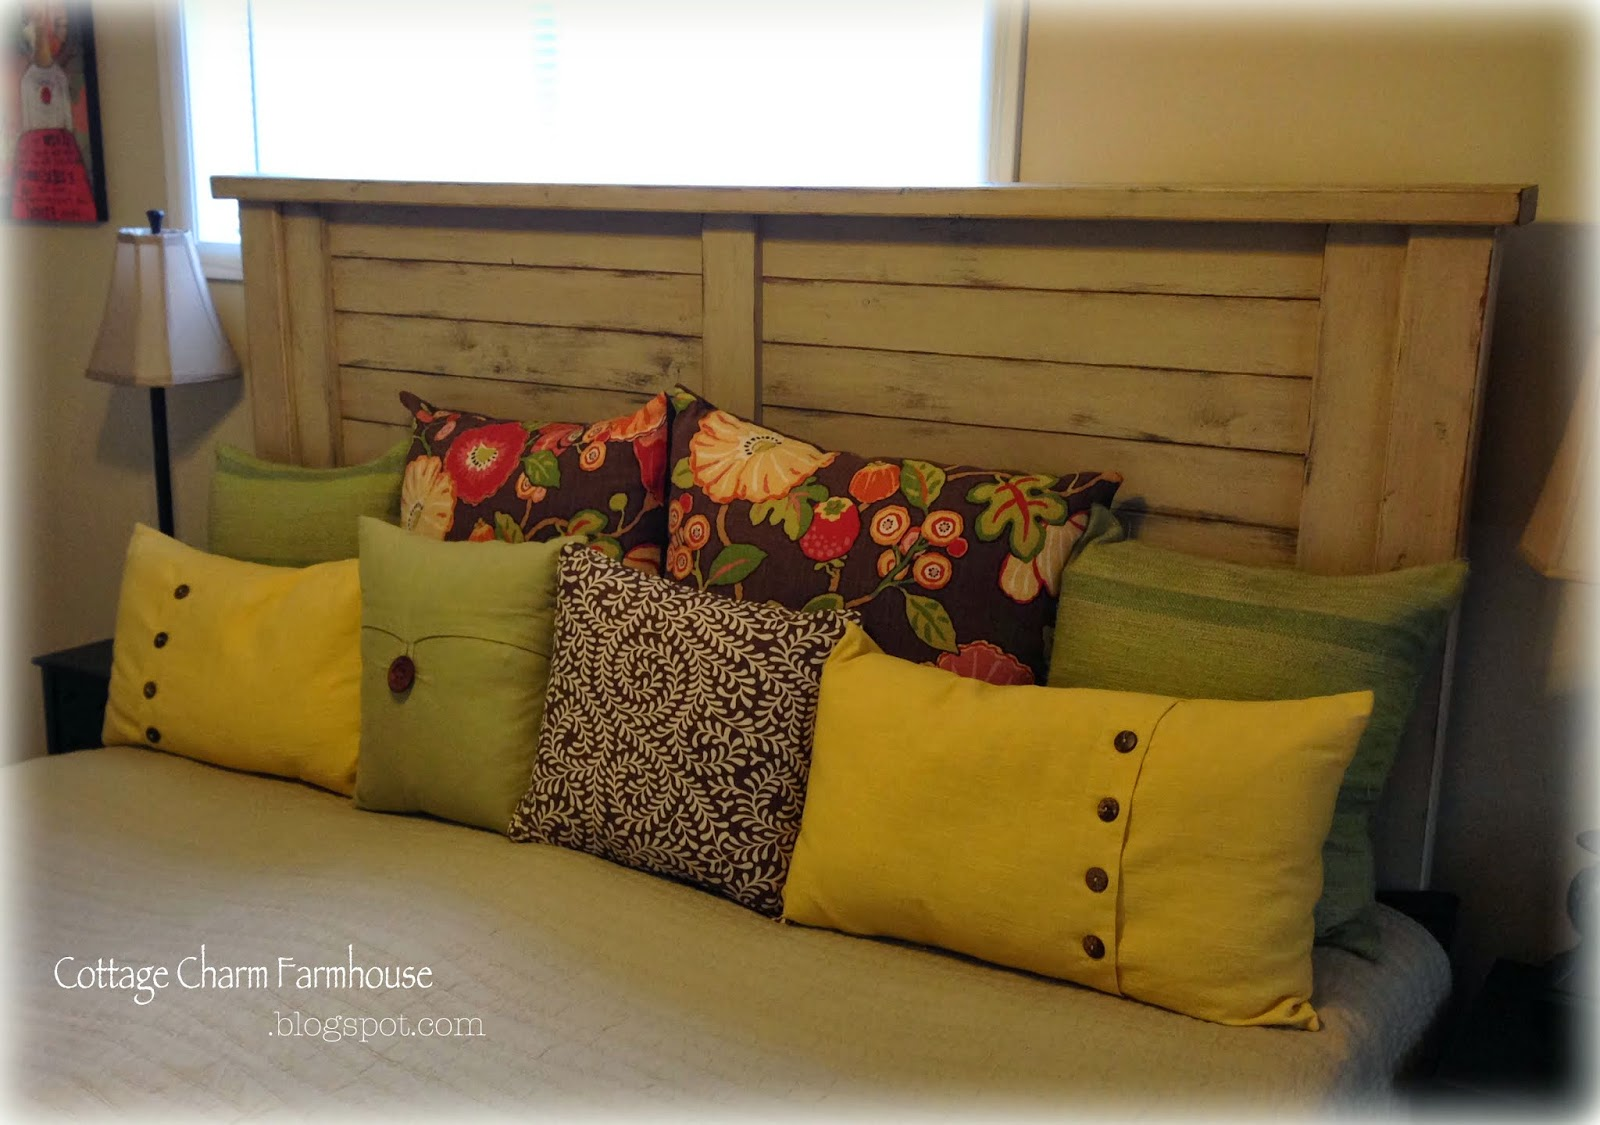 Cottage charm farmhouse collection shutter style headboard for Cottage charm farmhouse